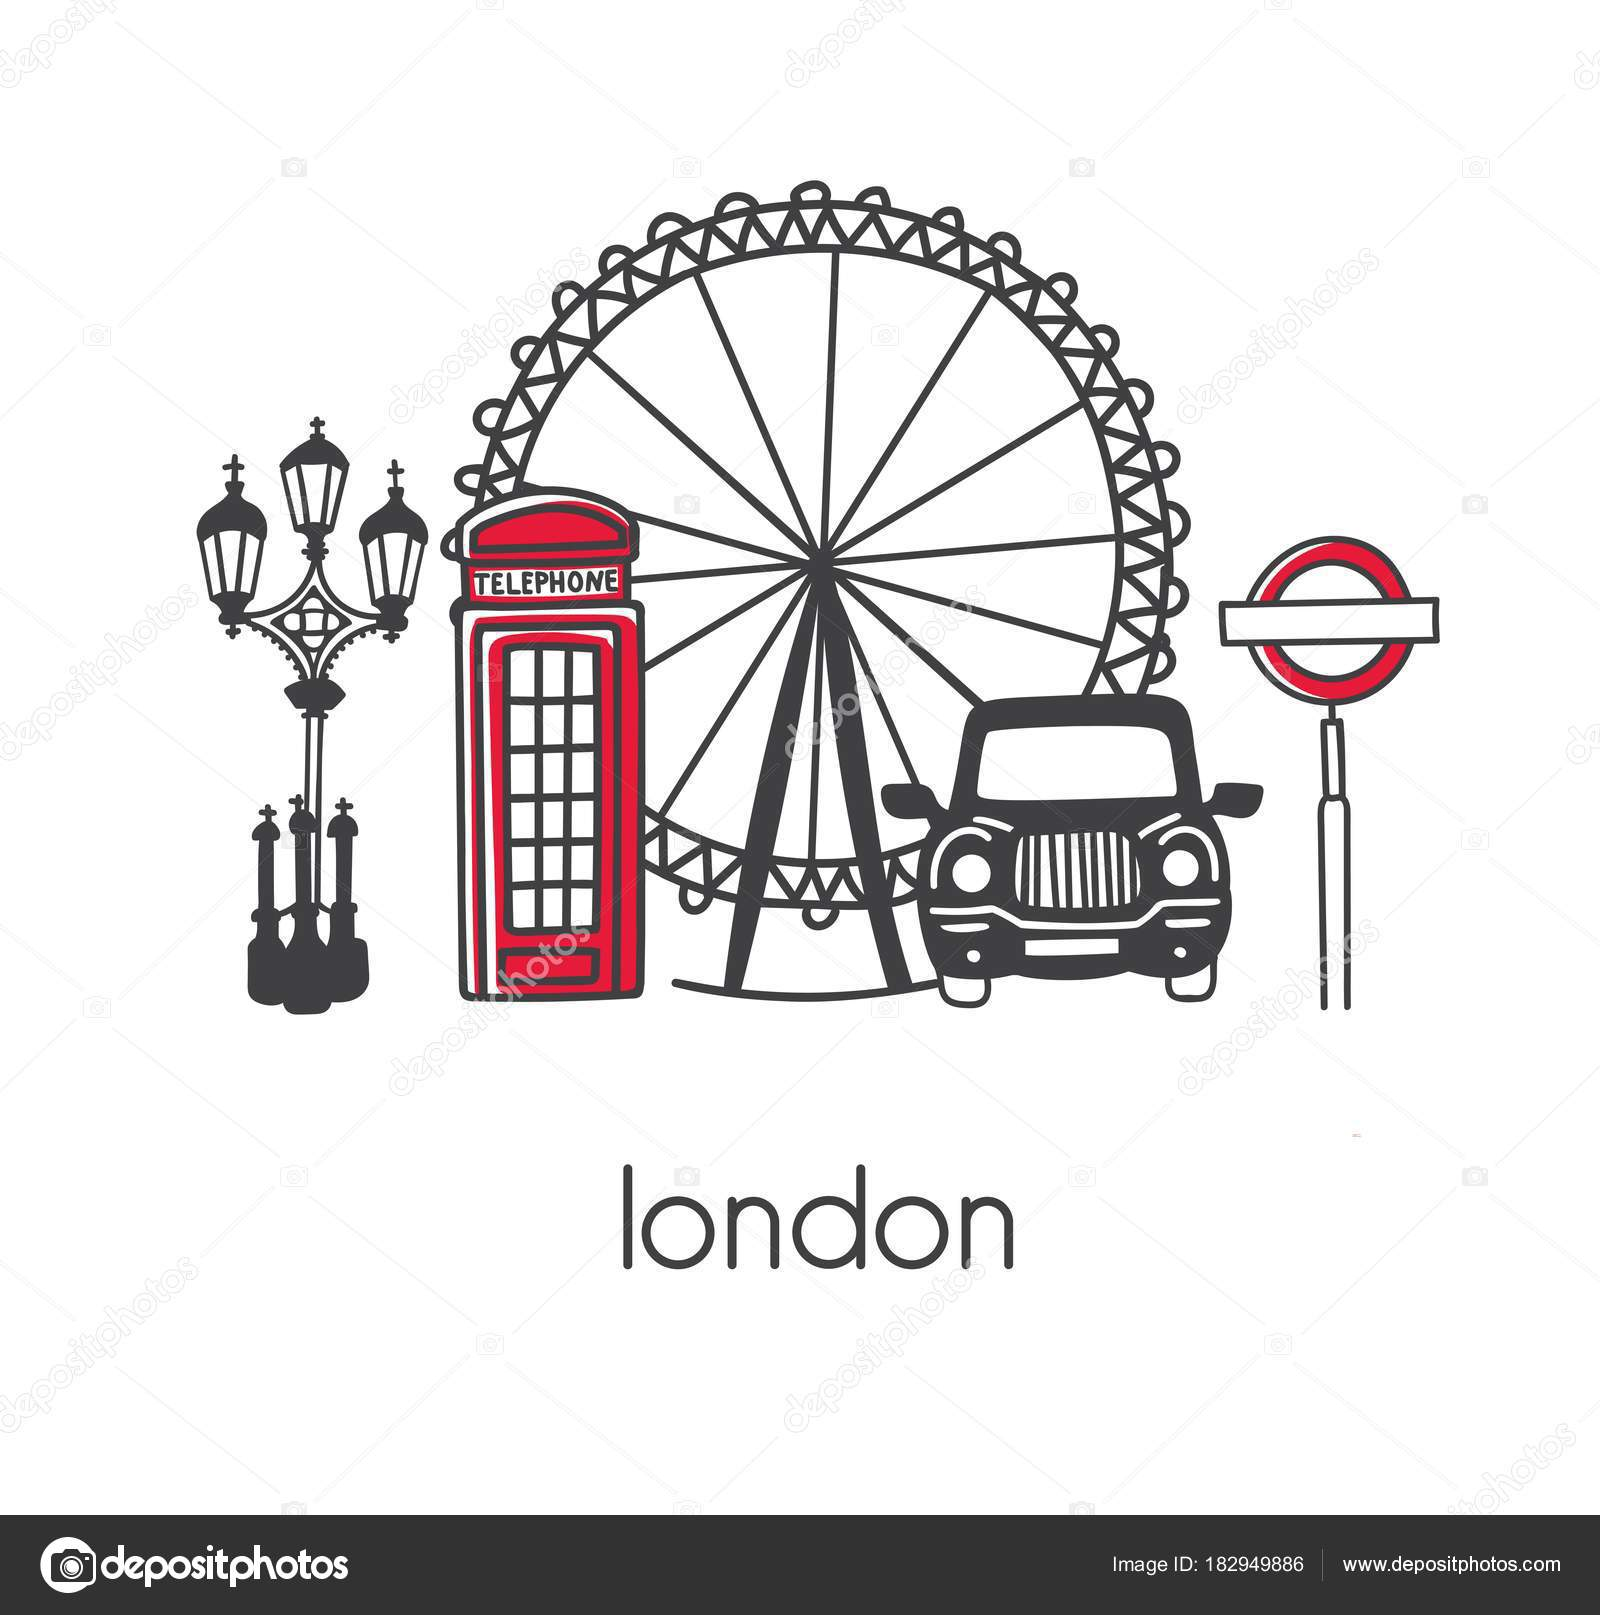 Modern vector illustration london hand drawn doodle english modern vector illustration london with hand drawn doodle english symbols telephone box observation wheel street lamp and sign taxi biocorpaavc